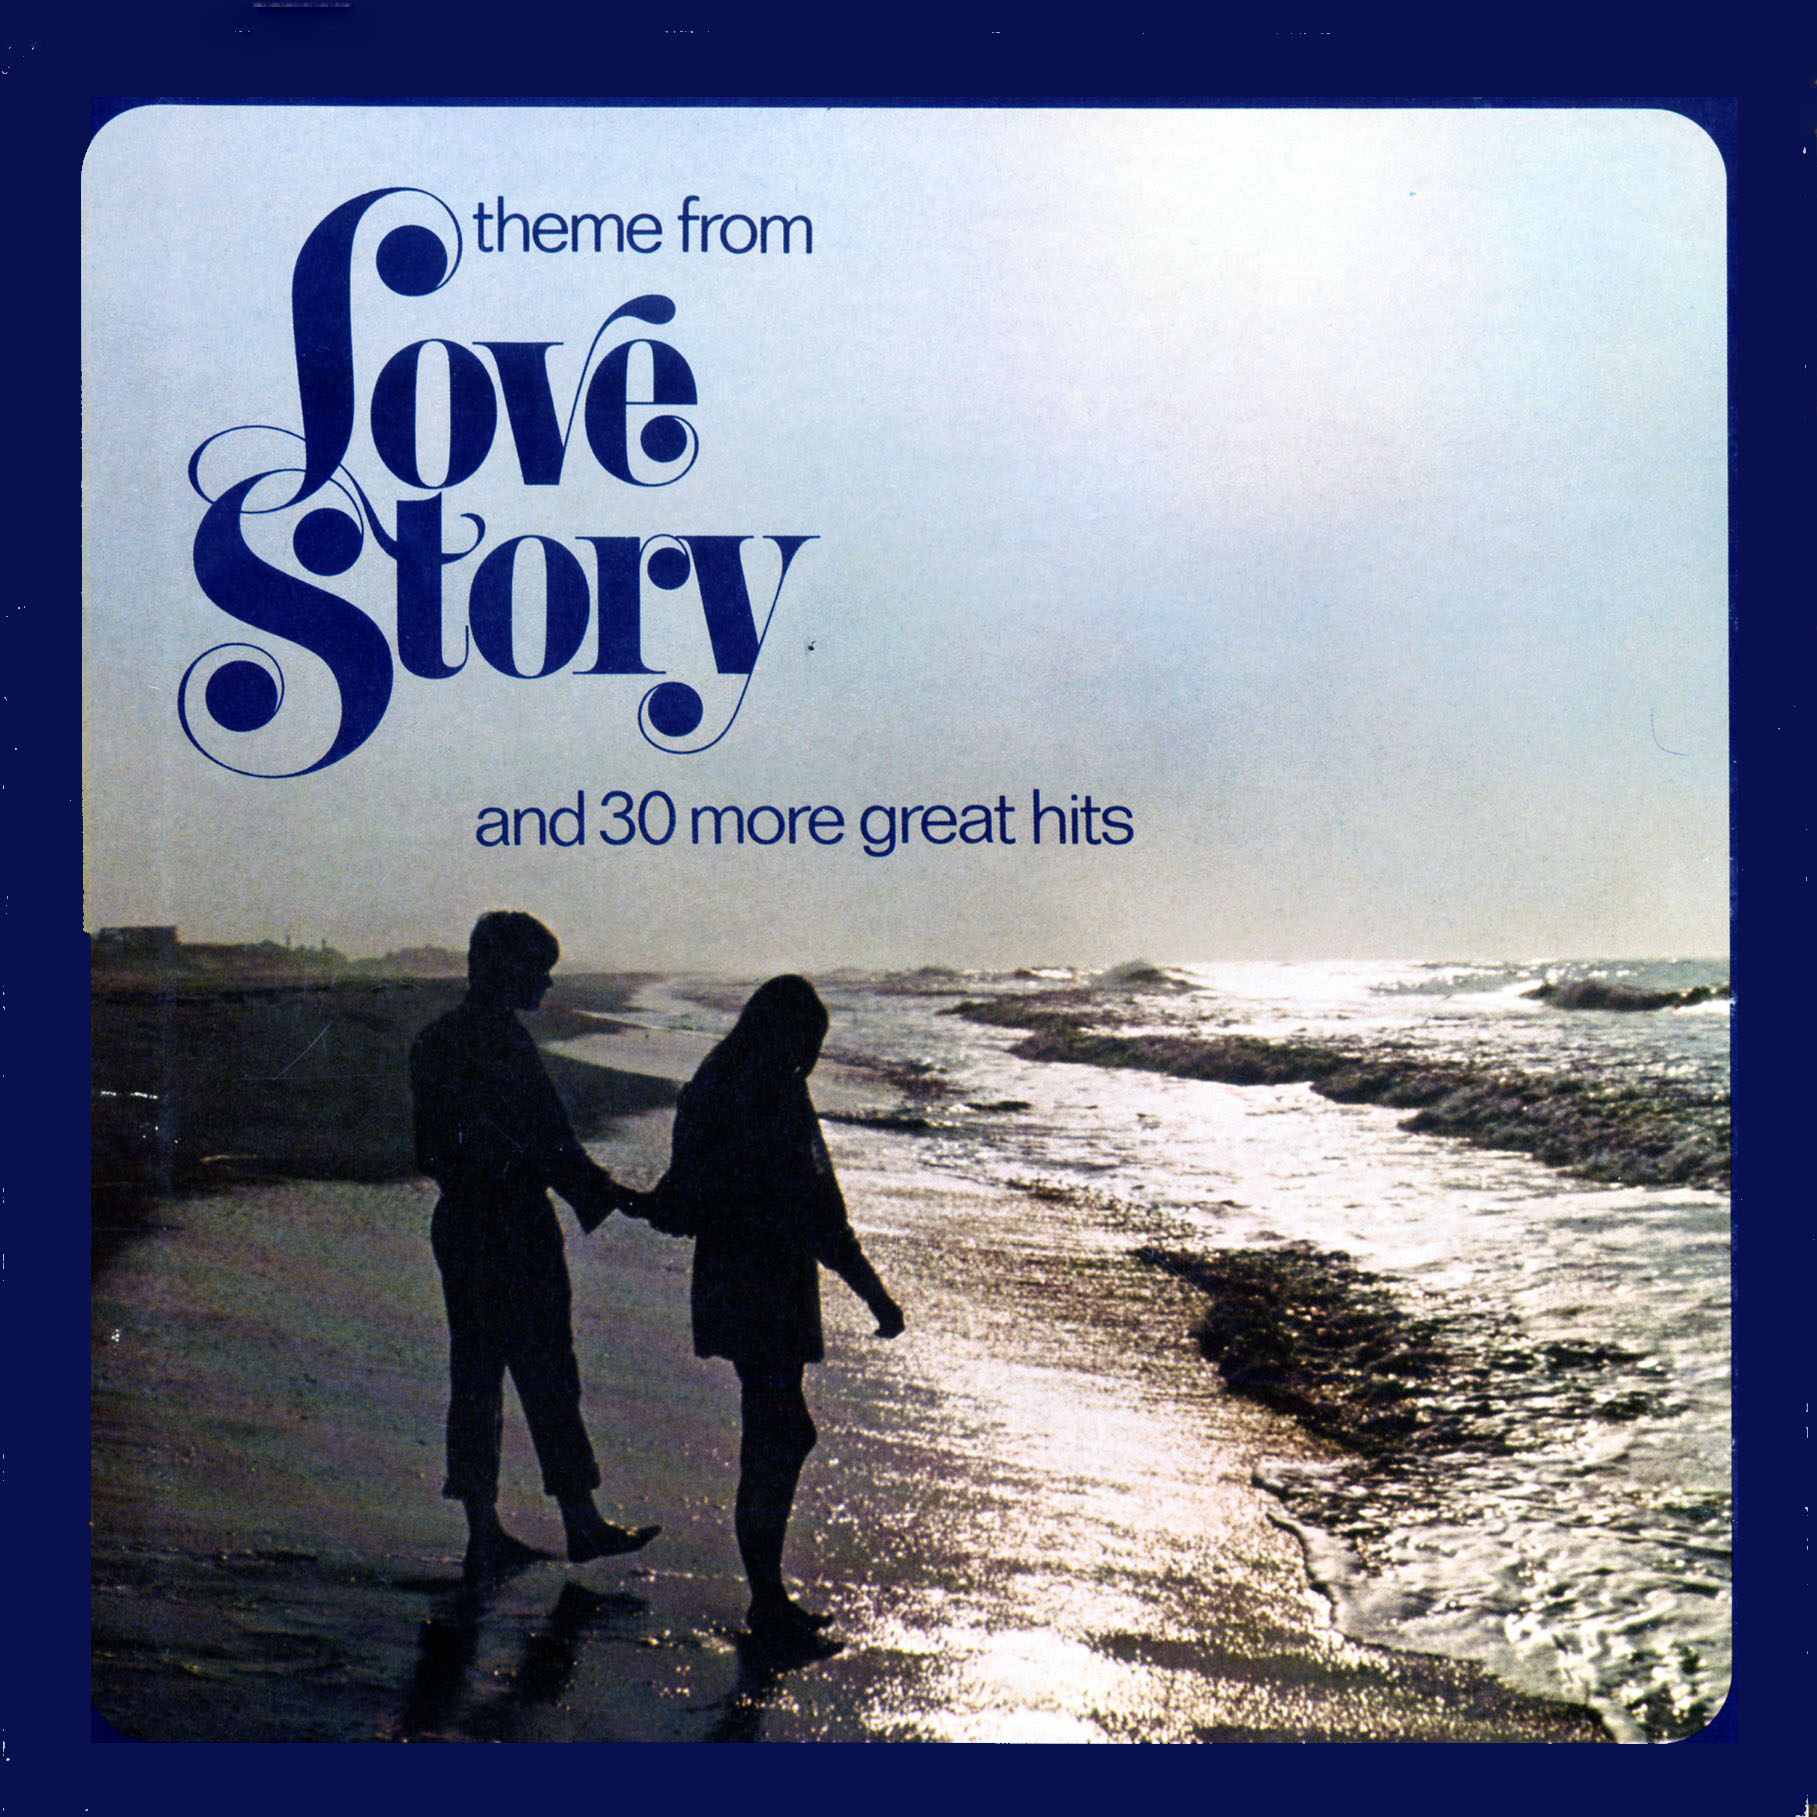 P3S5528 - Love Story Theme and 30 more great hits on CD